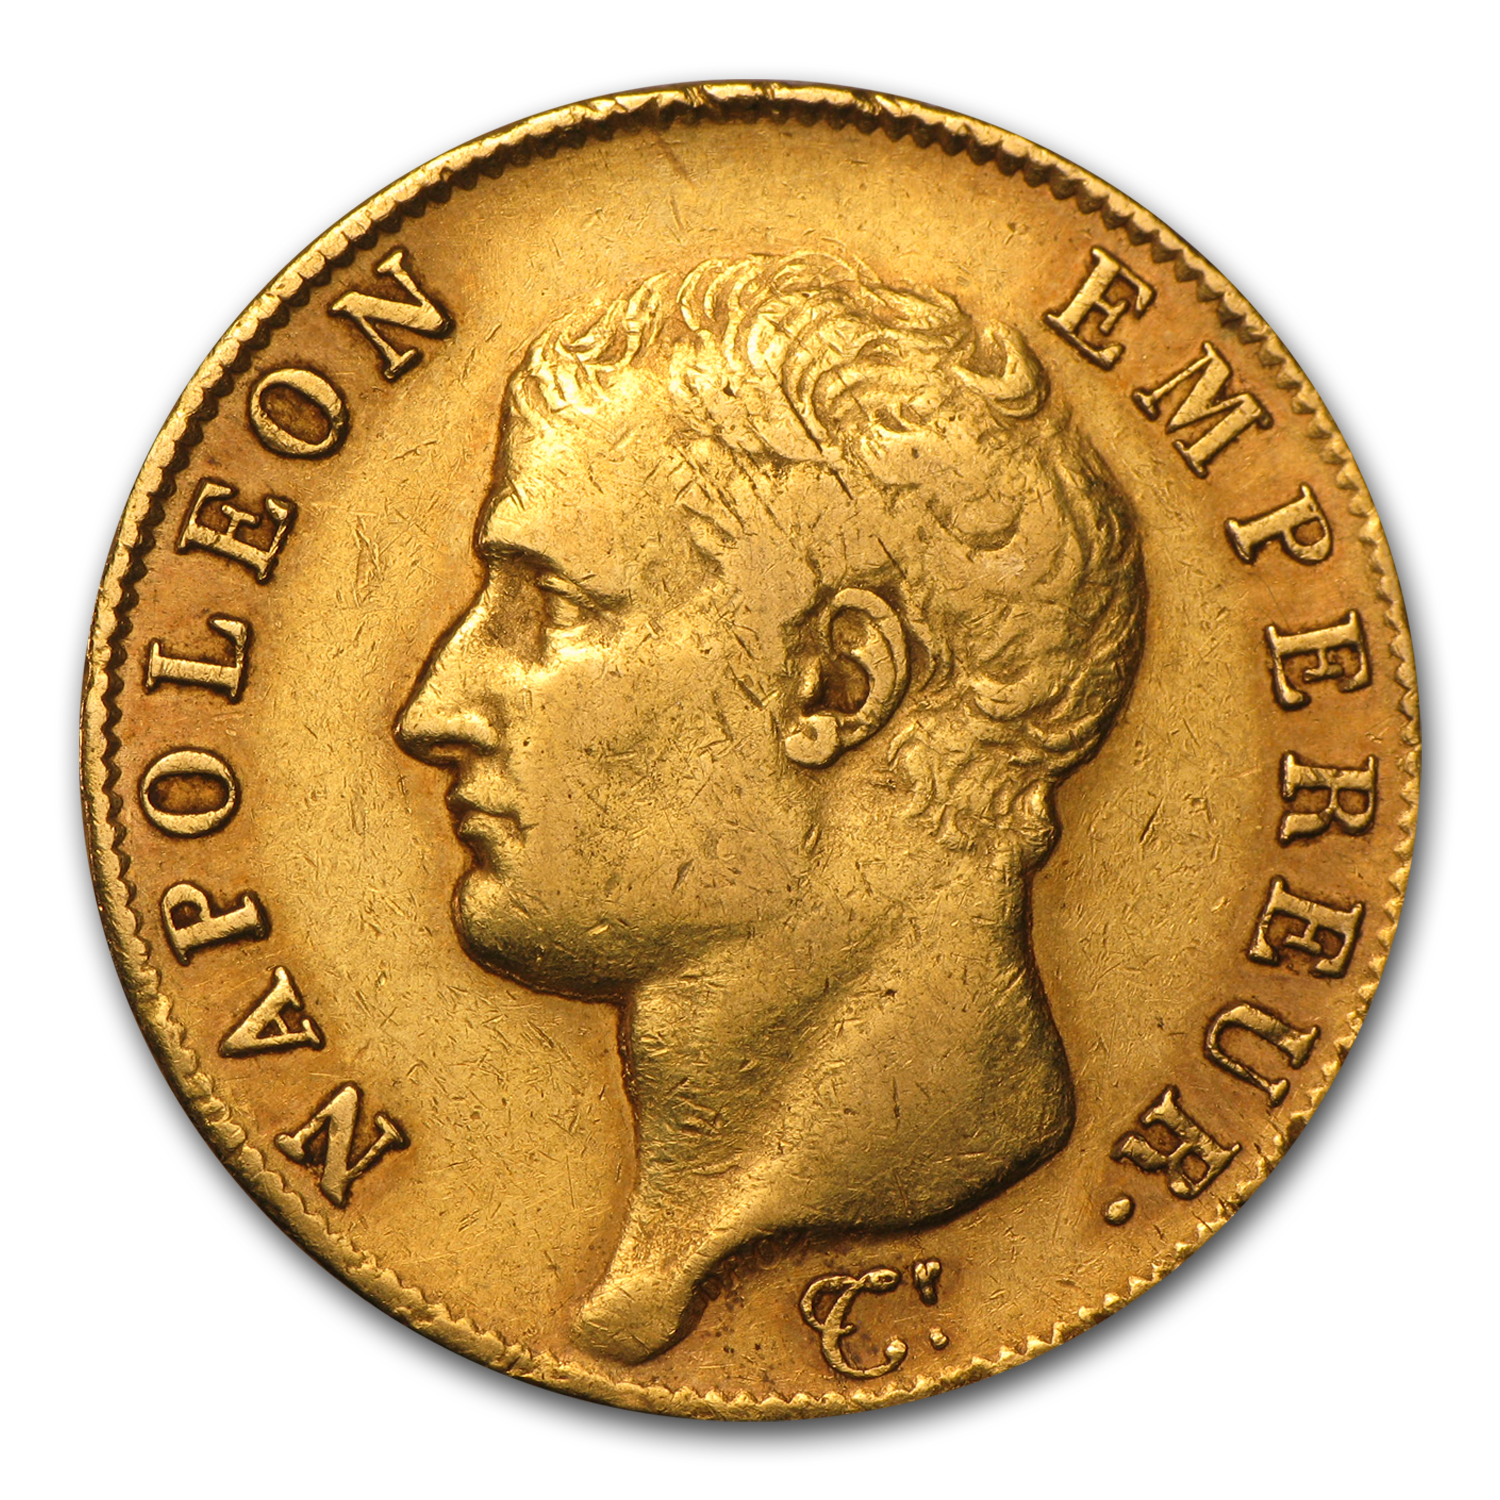 France 1806-1813 Gold 40 Franc of Napoleon I (Circulated)